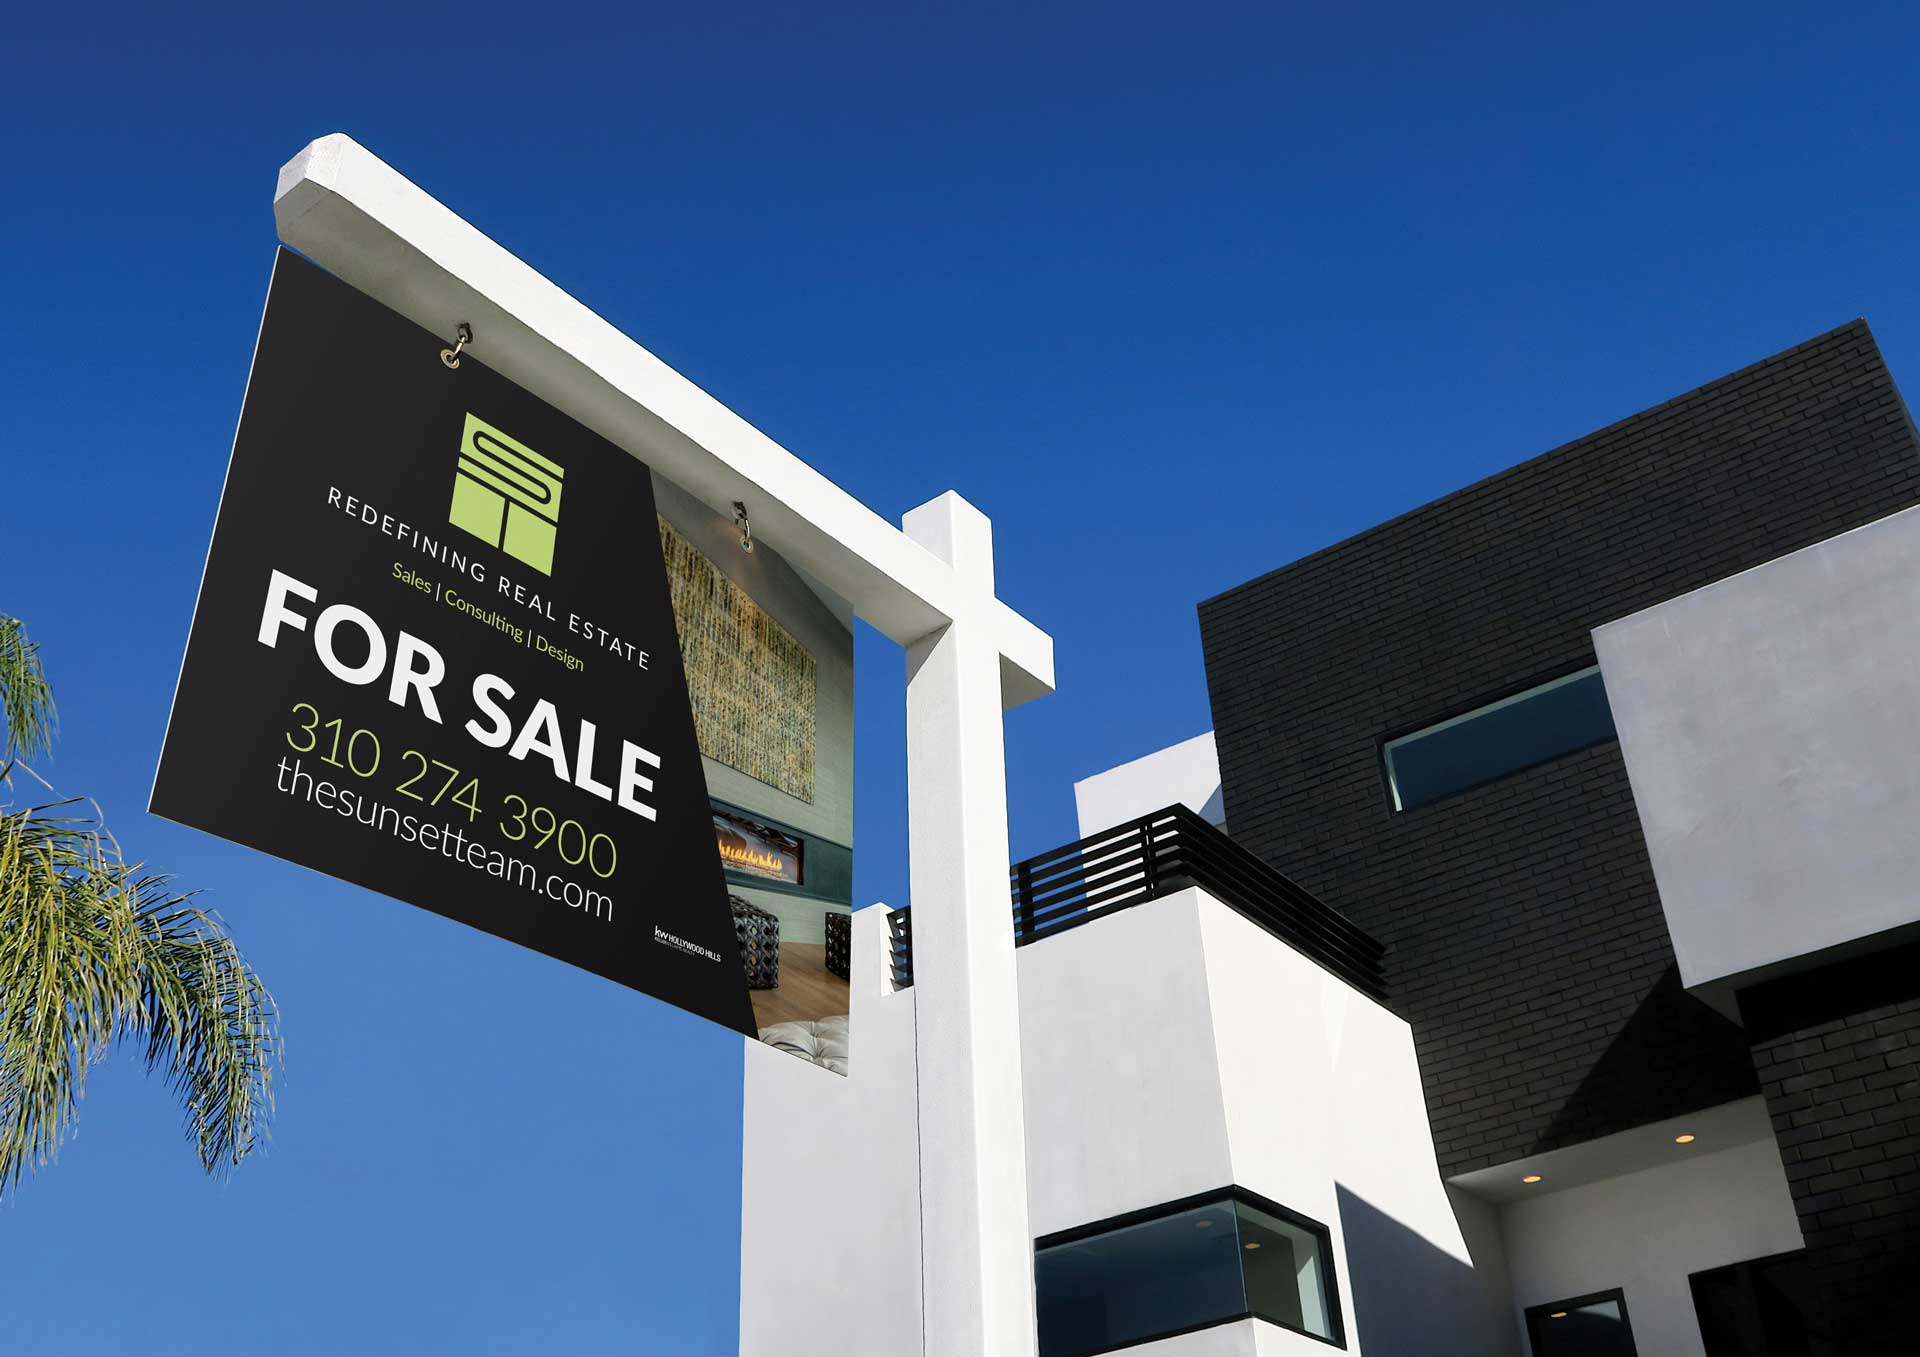 sunset-team-real-estate-signage-2